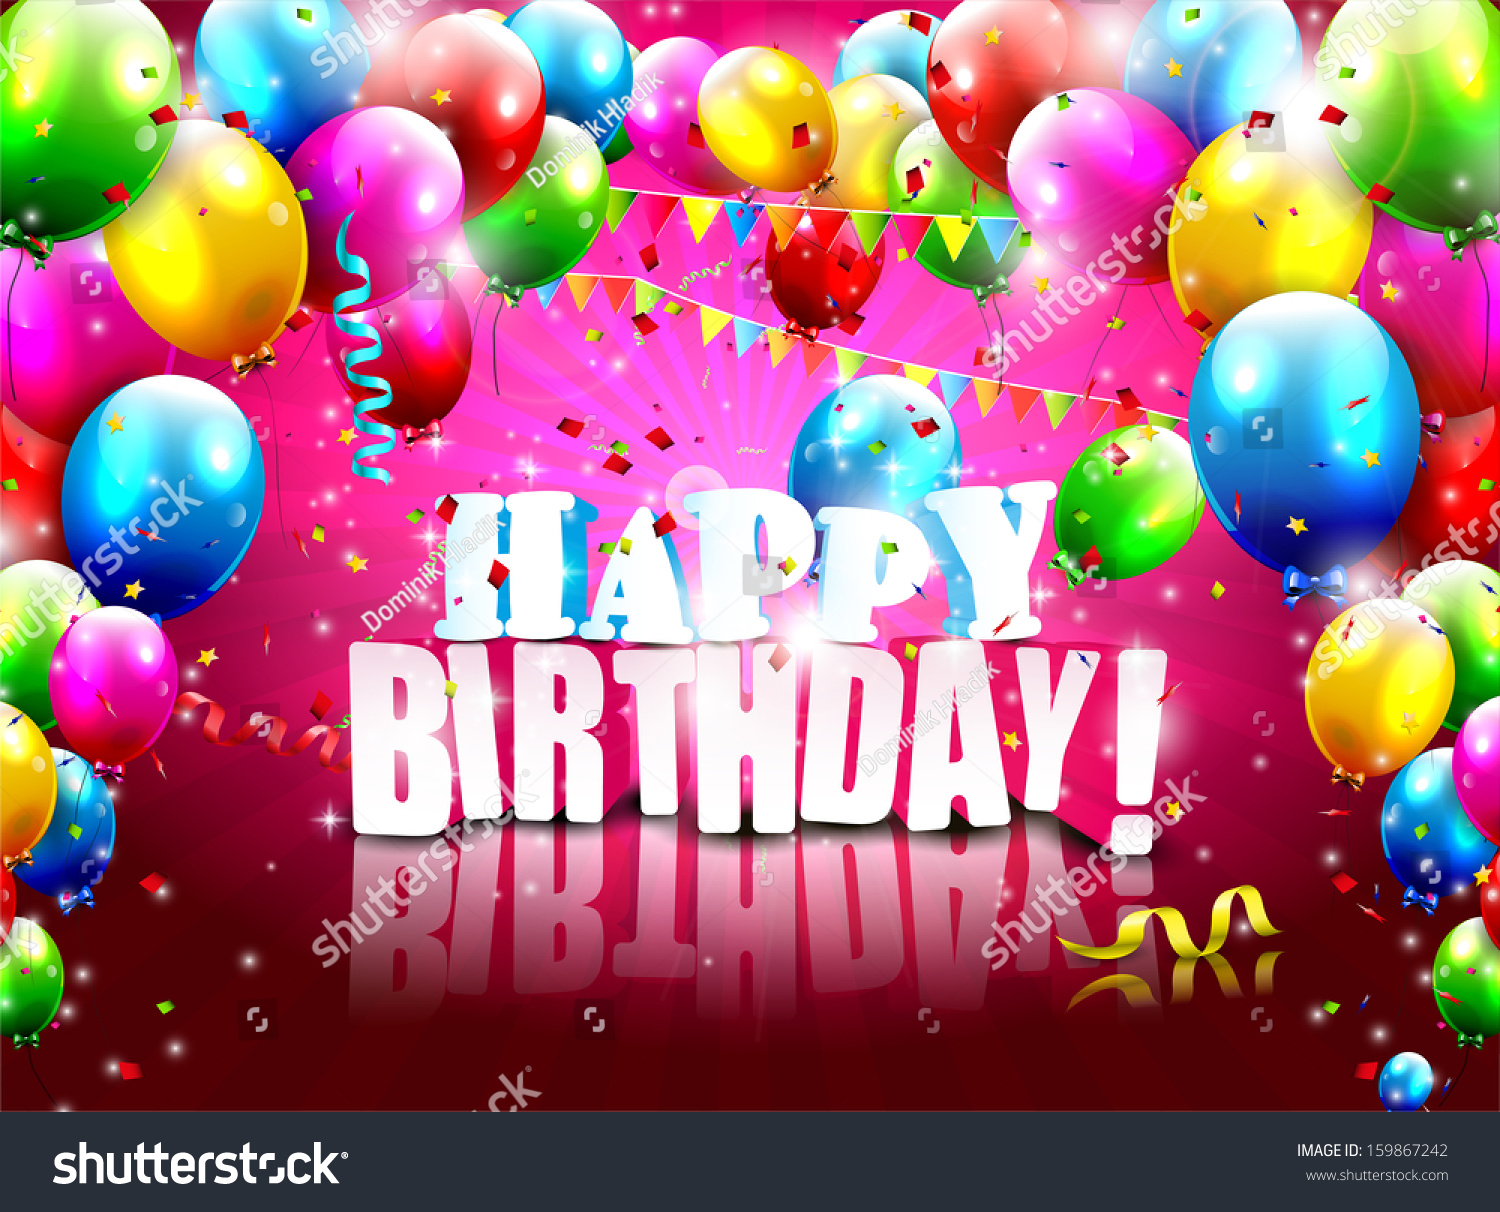 B day poster designs - Realistic Colorful Birthday Poster With Balloons And 3d Text Vector Background